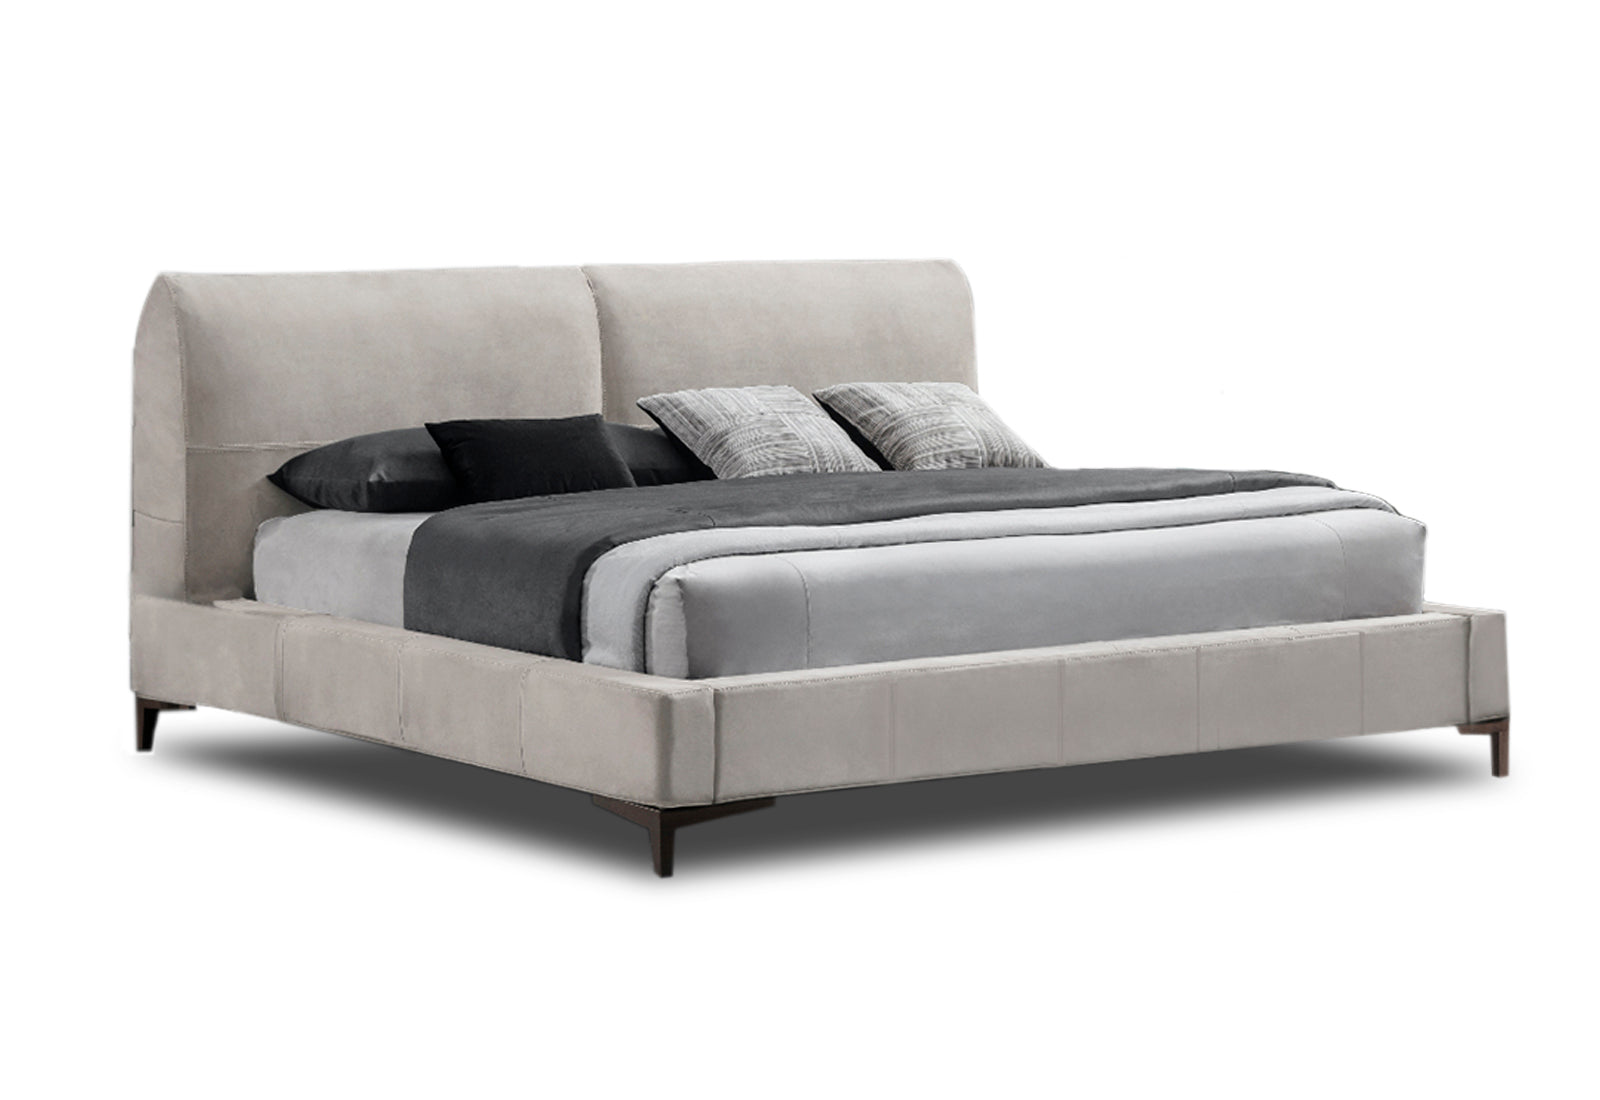 Tazzo Cama KS Piel Cat 04 Buk Off White